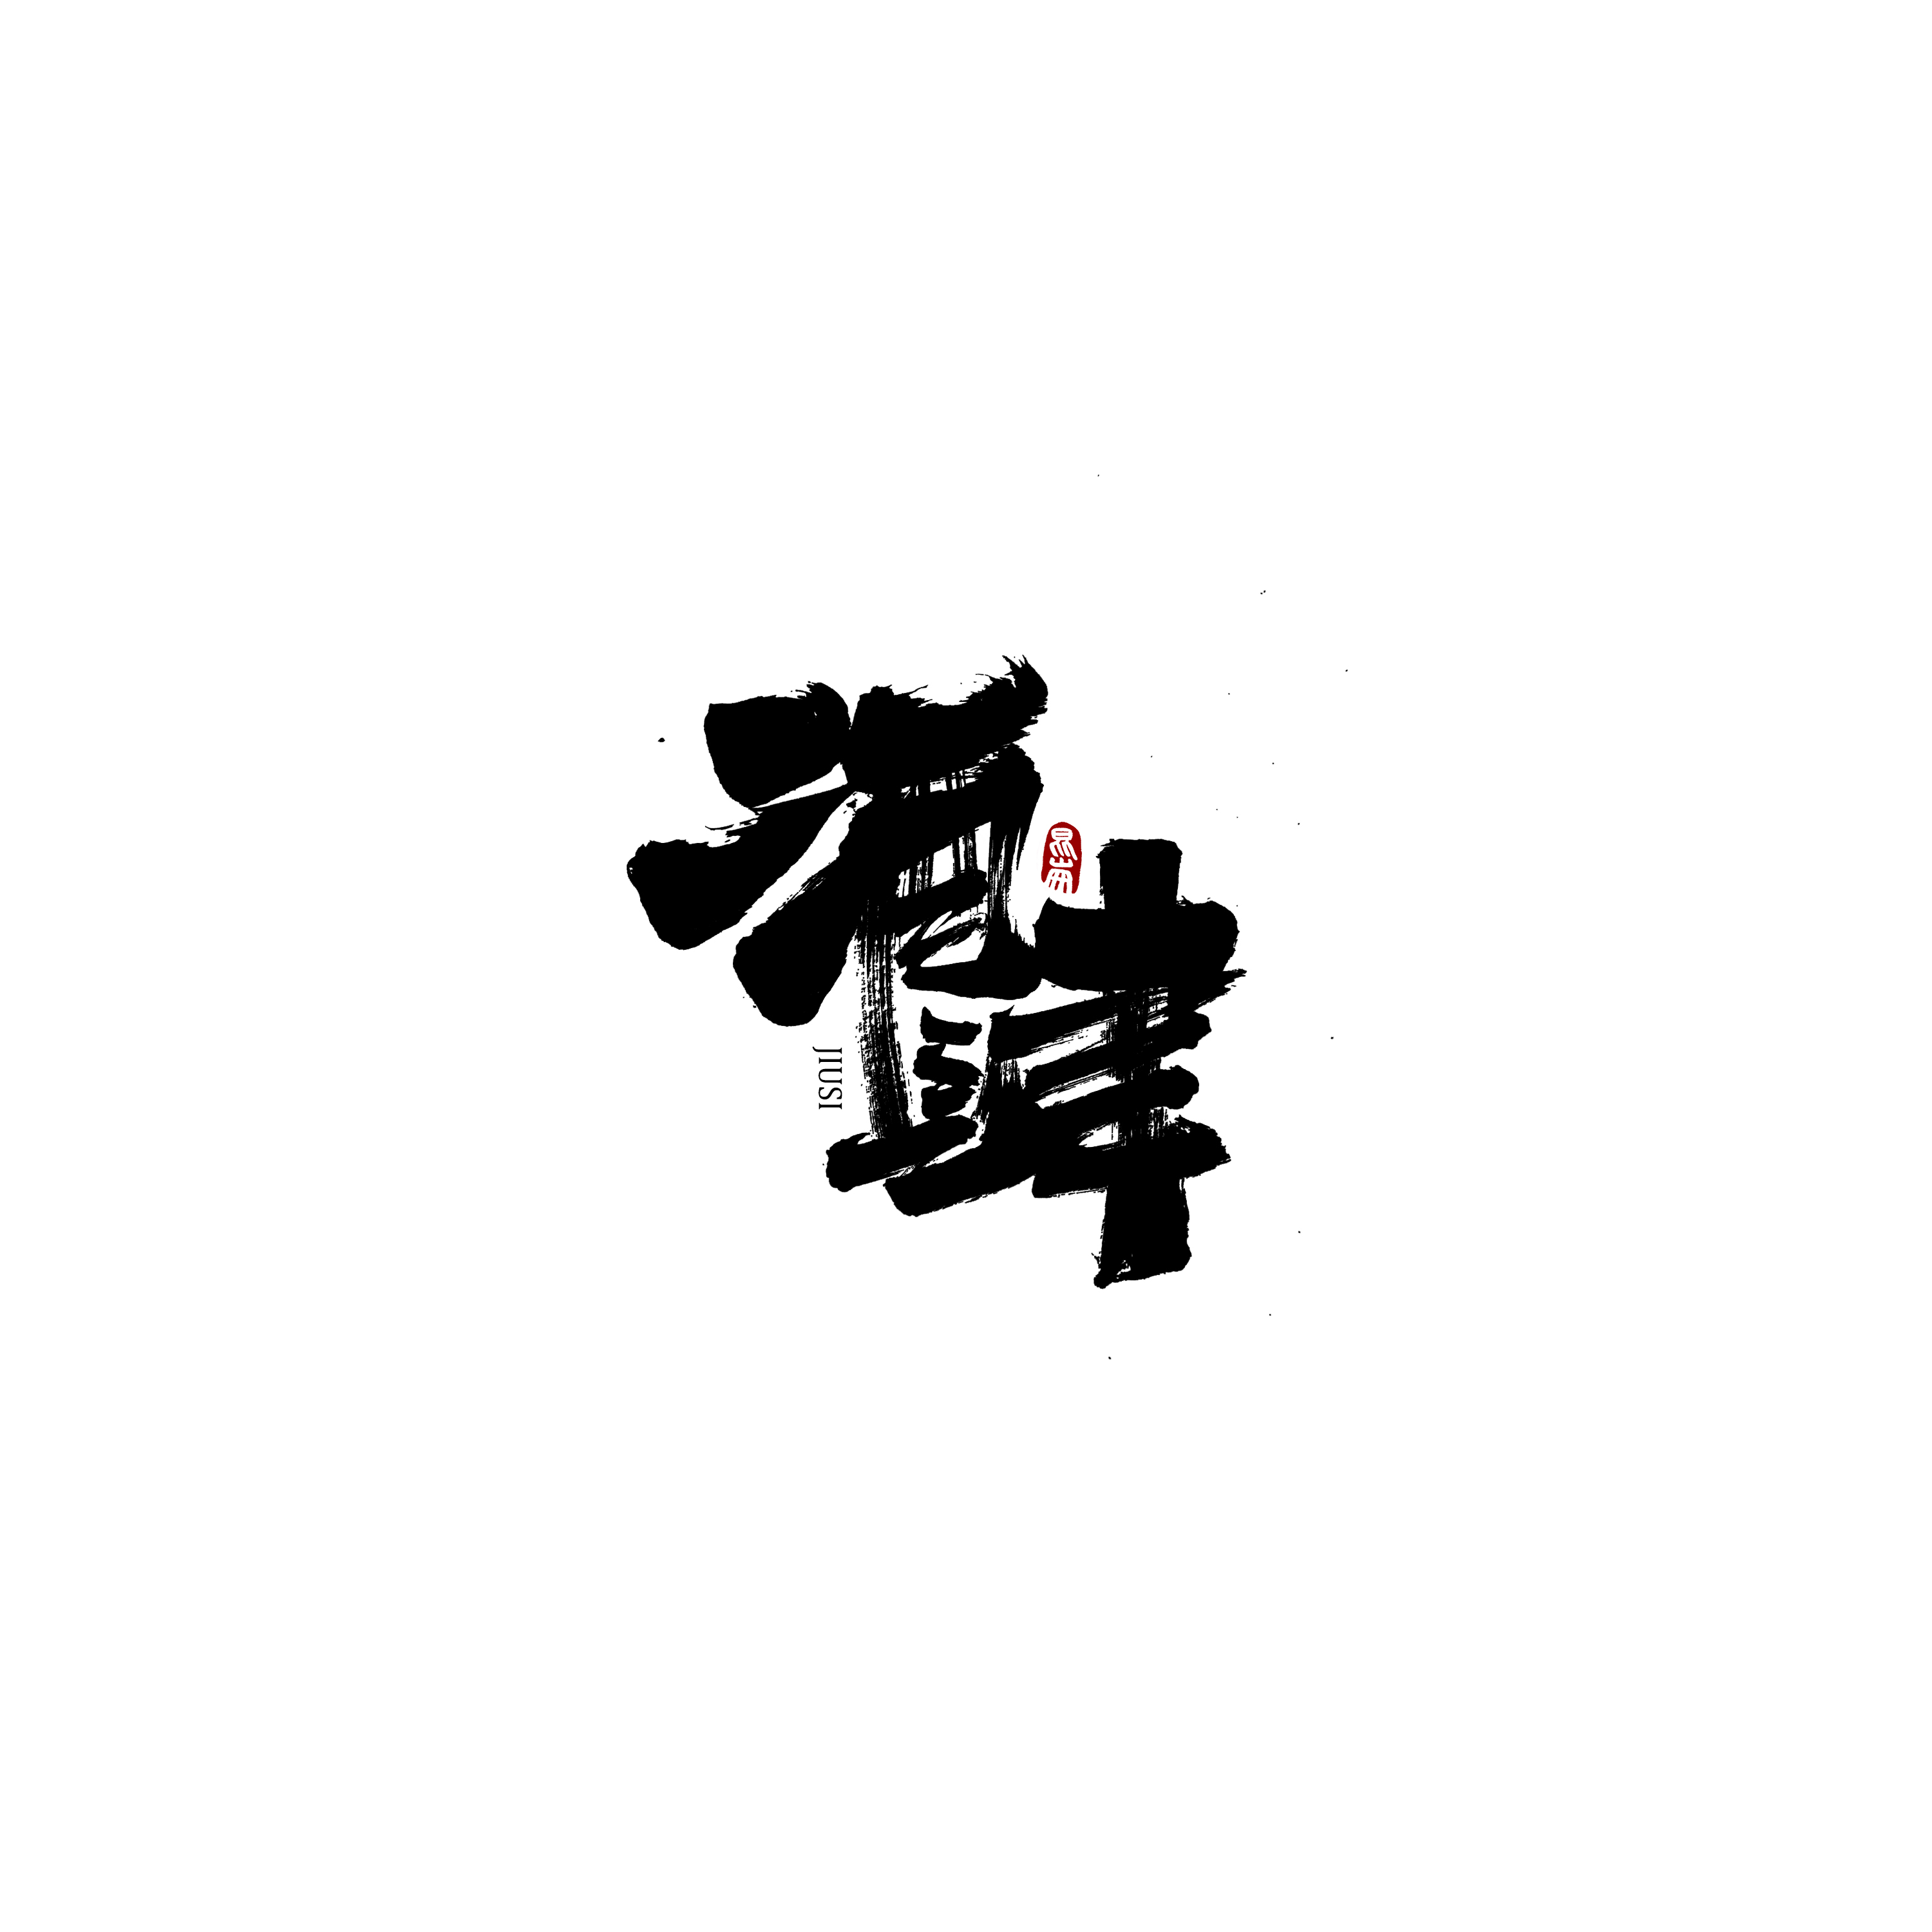 25P Chinese traditional calligraphy brush calligraphy font style appreciation #.1966